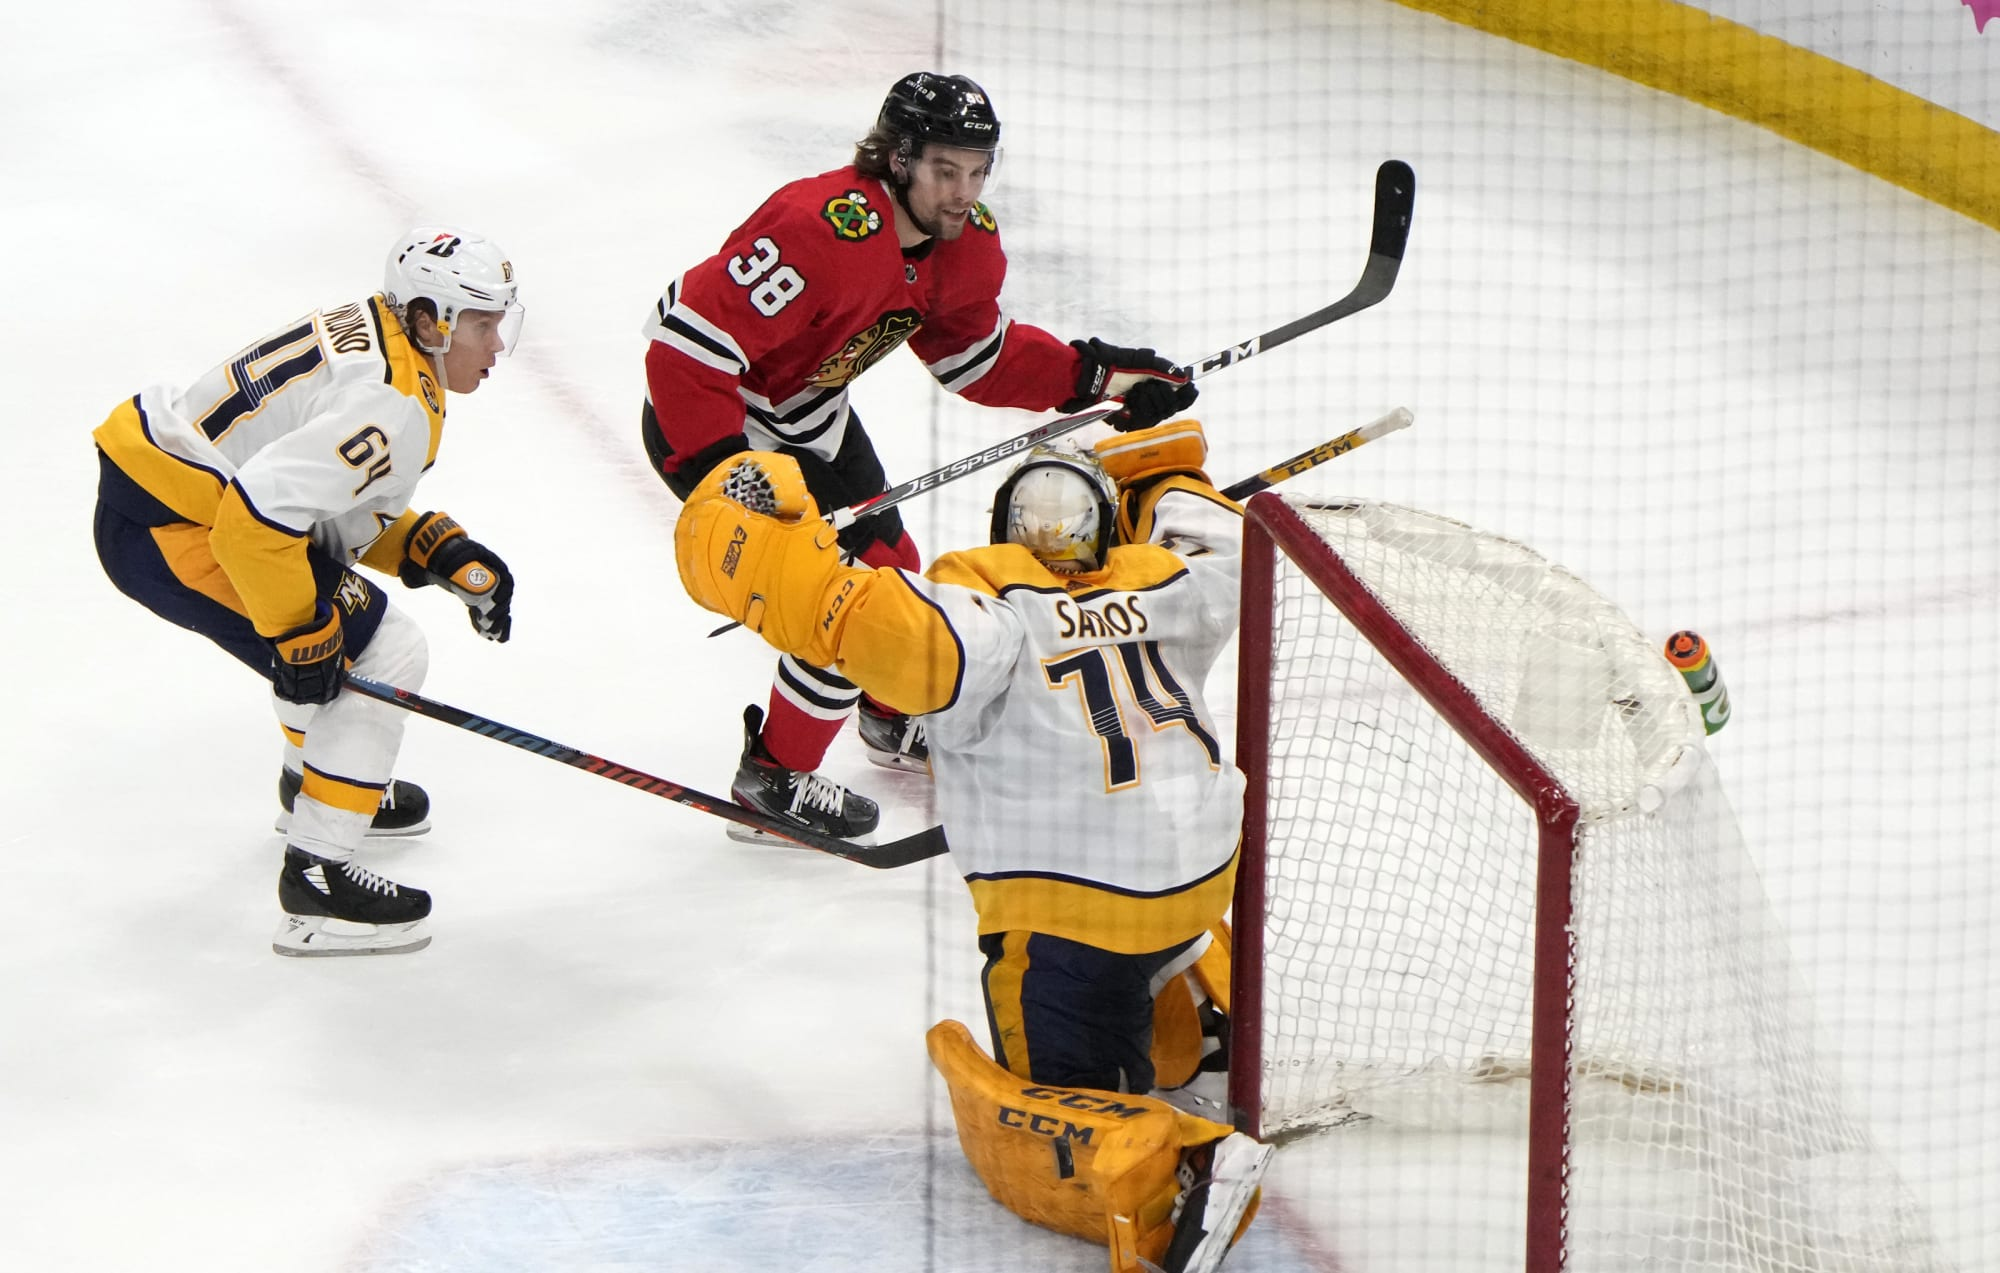 Nashville Predators Stunned in Crushing Overtime Loss to Chicago